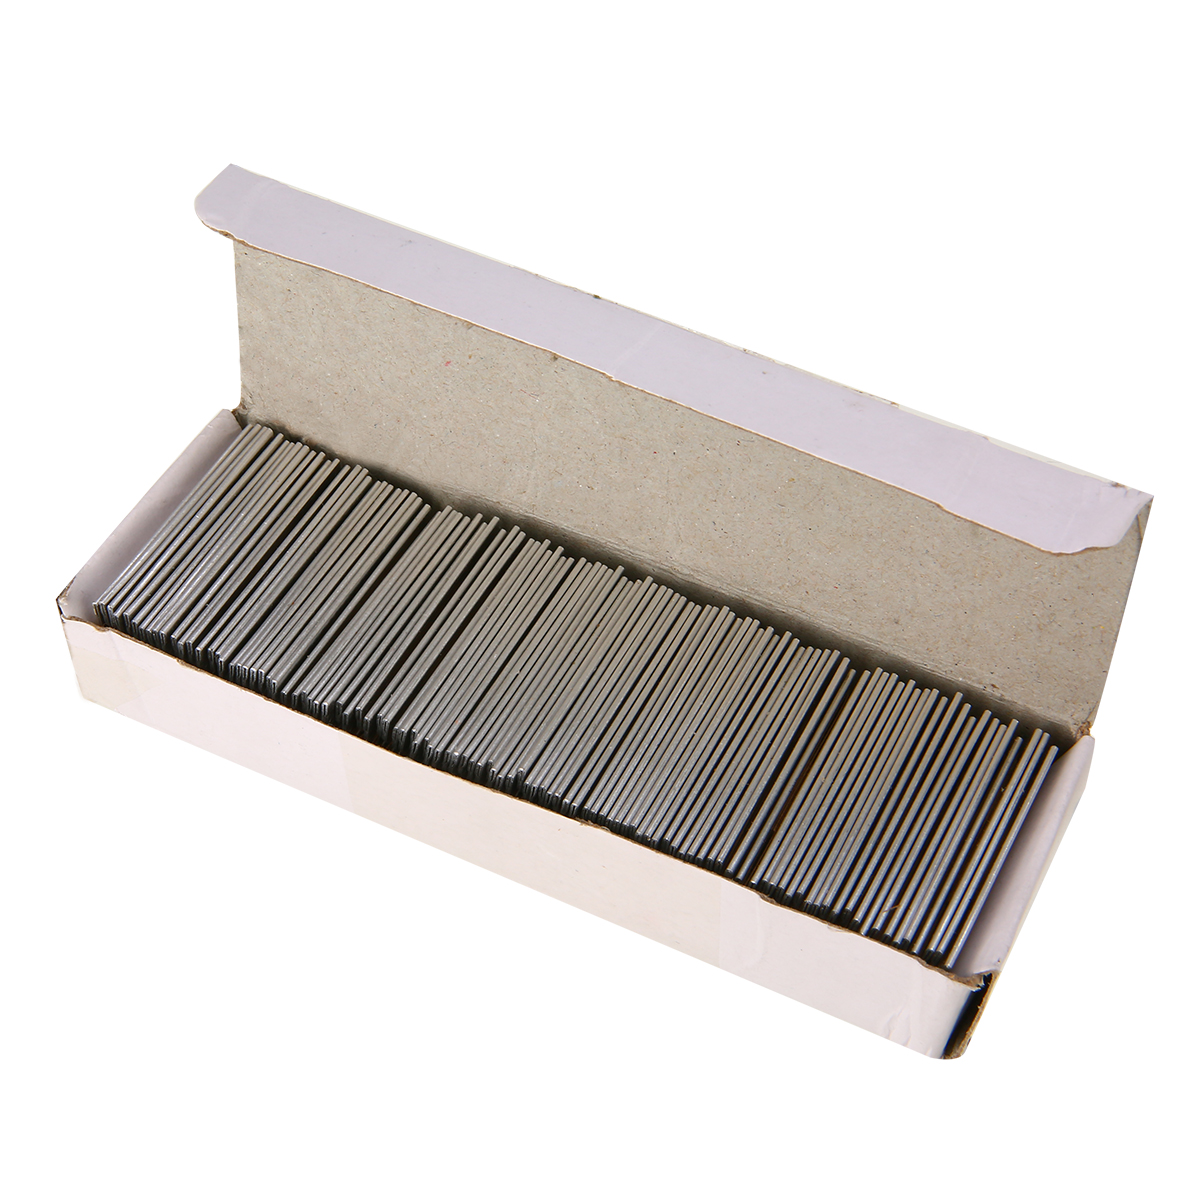 100pcs Blades Safety Razor Carbon Steel Single Edge Scraper  Glass Cleaner Replacement For Fish Tank Glass Window 0.2mm Thick